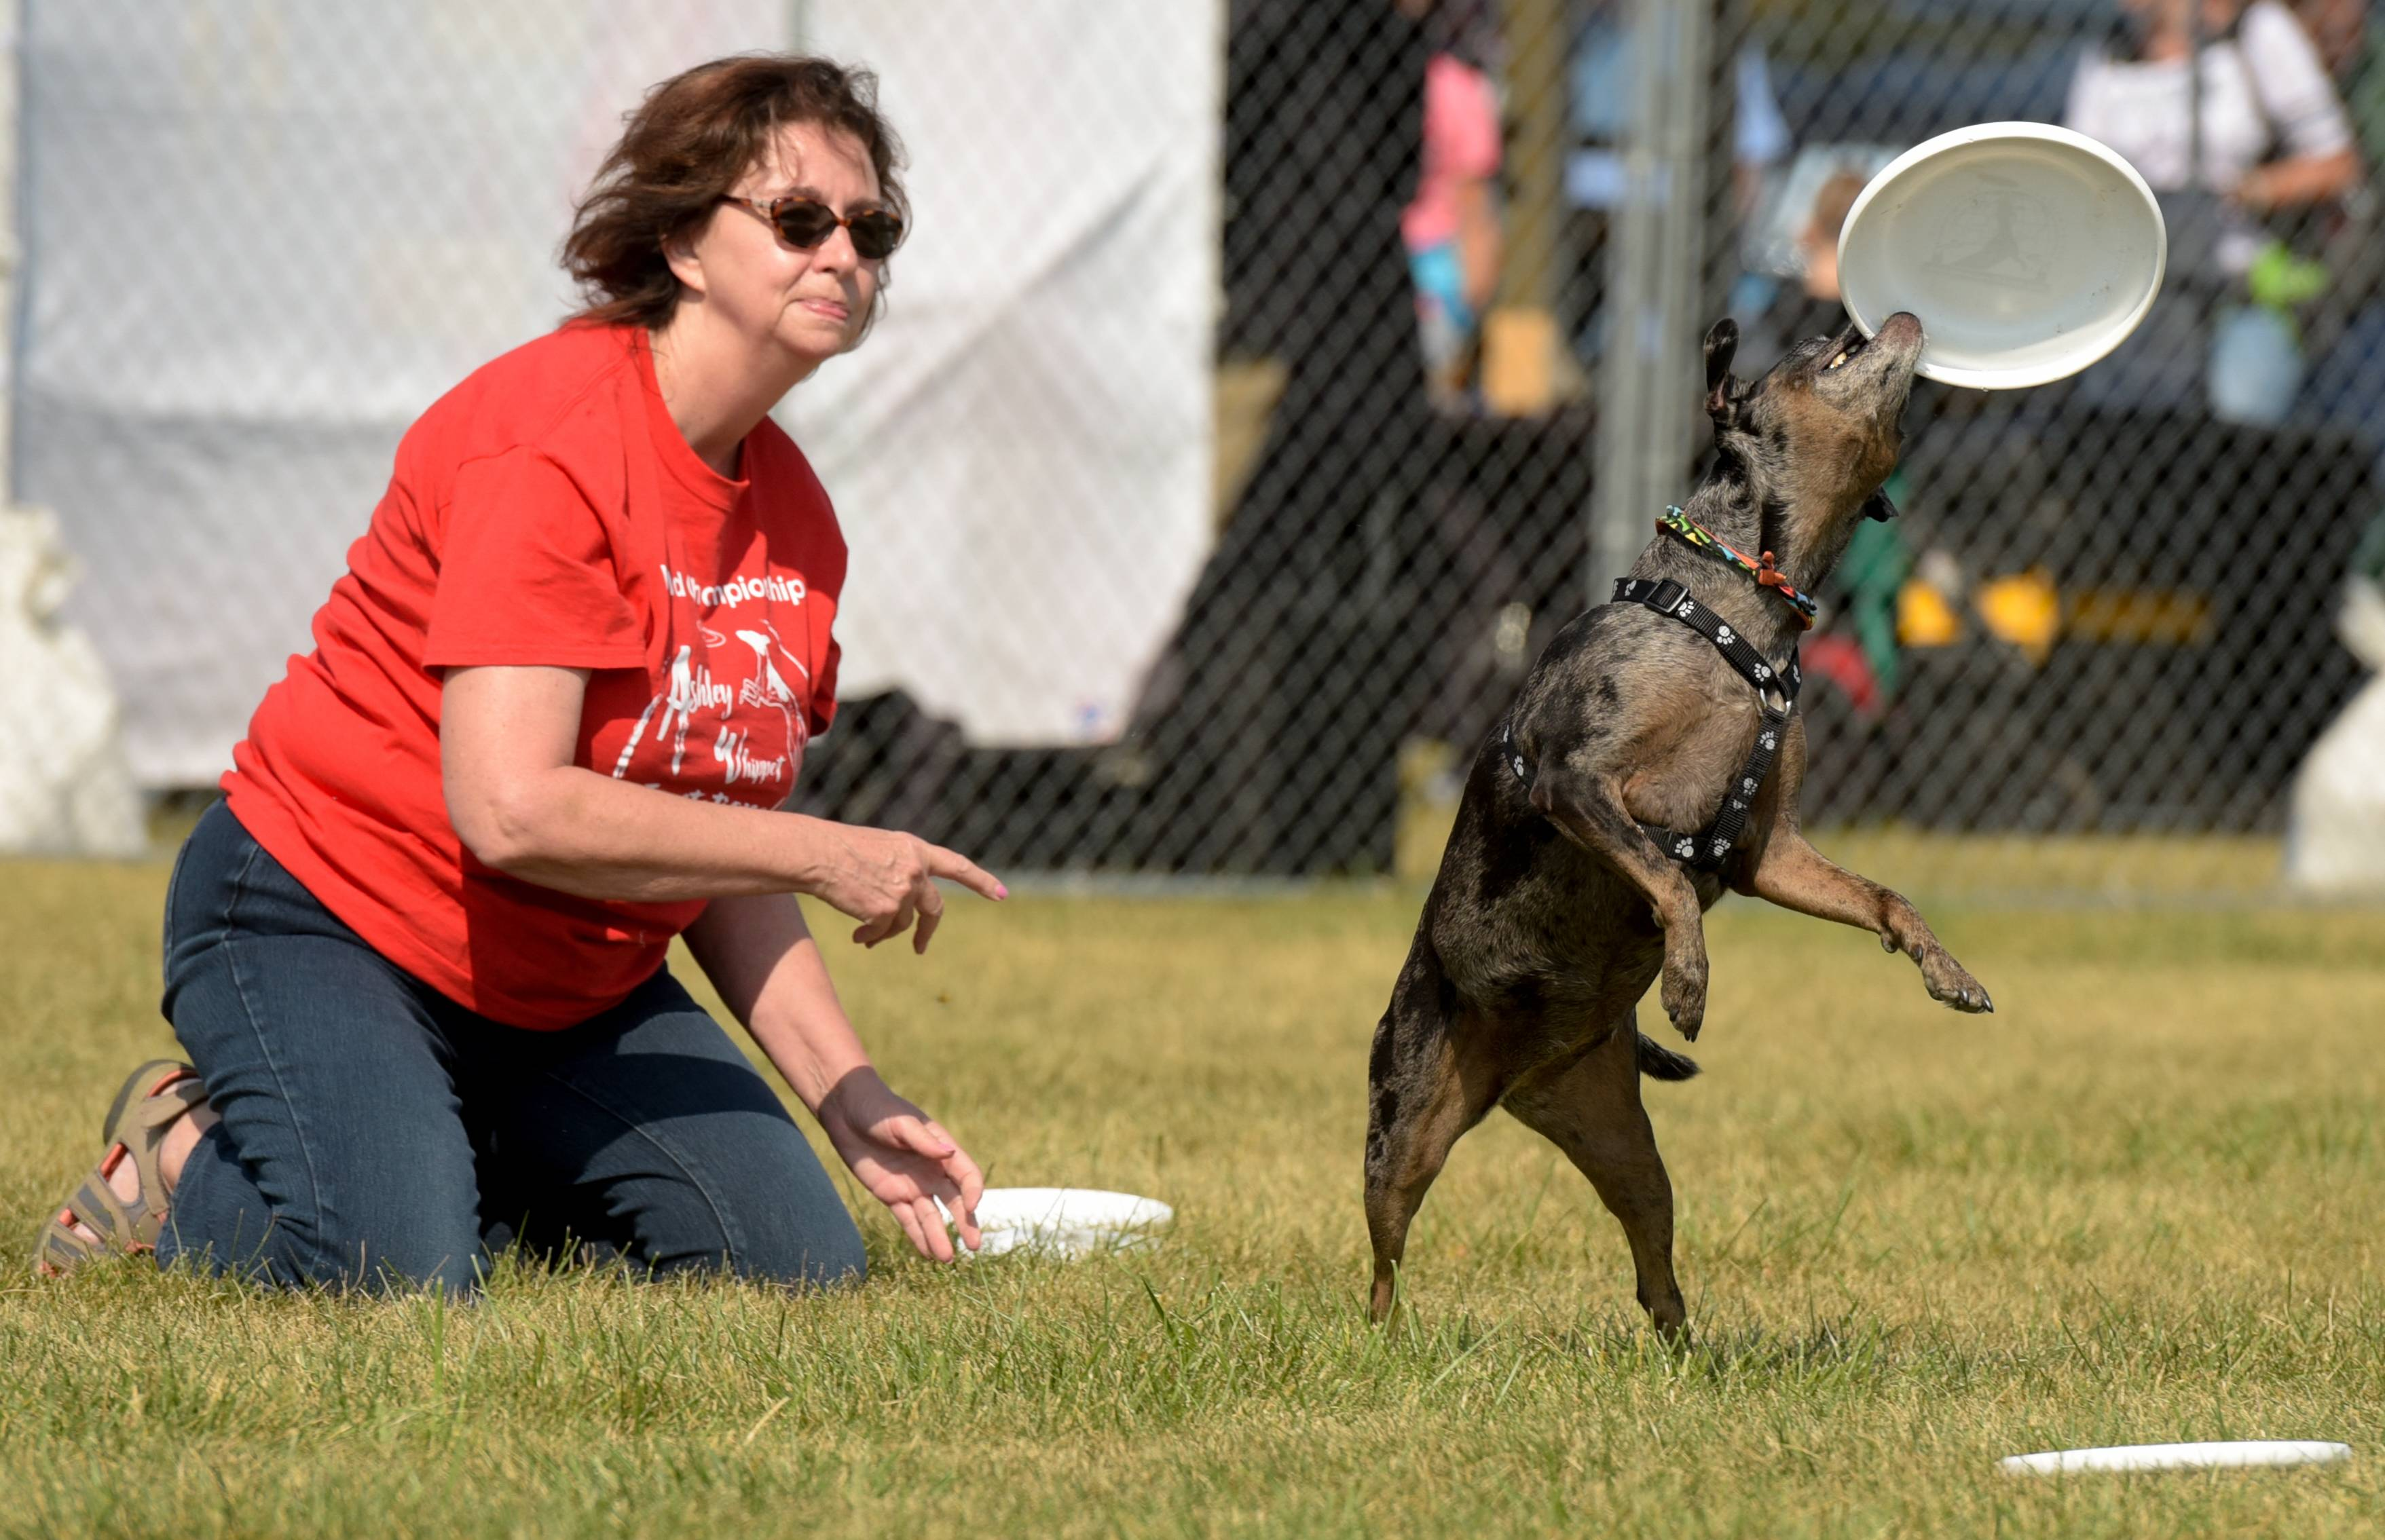 Chris Wehrli and her dog Mocha Latte from Skydogs in Naperville perform for visitors to the annual CSBarks dog festival Sunday in Carol Stream.